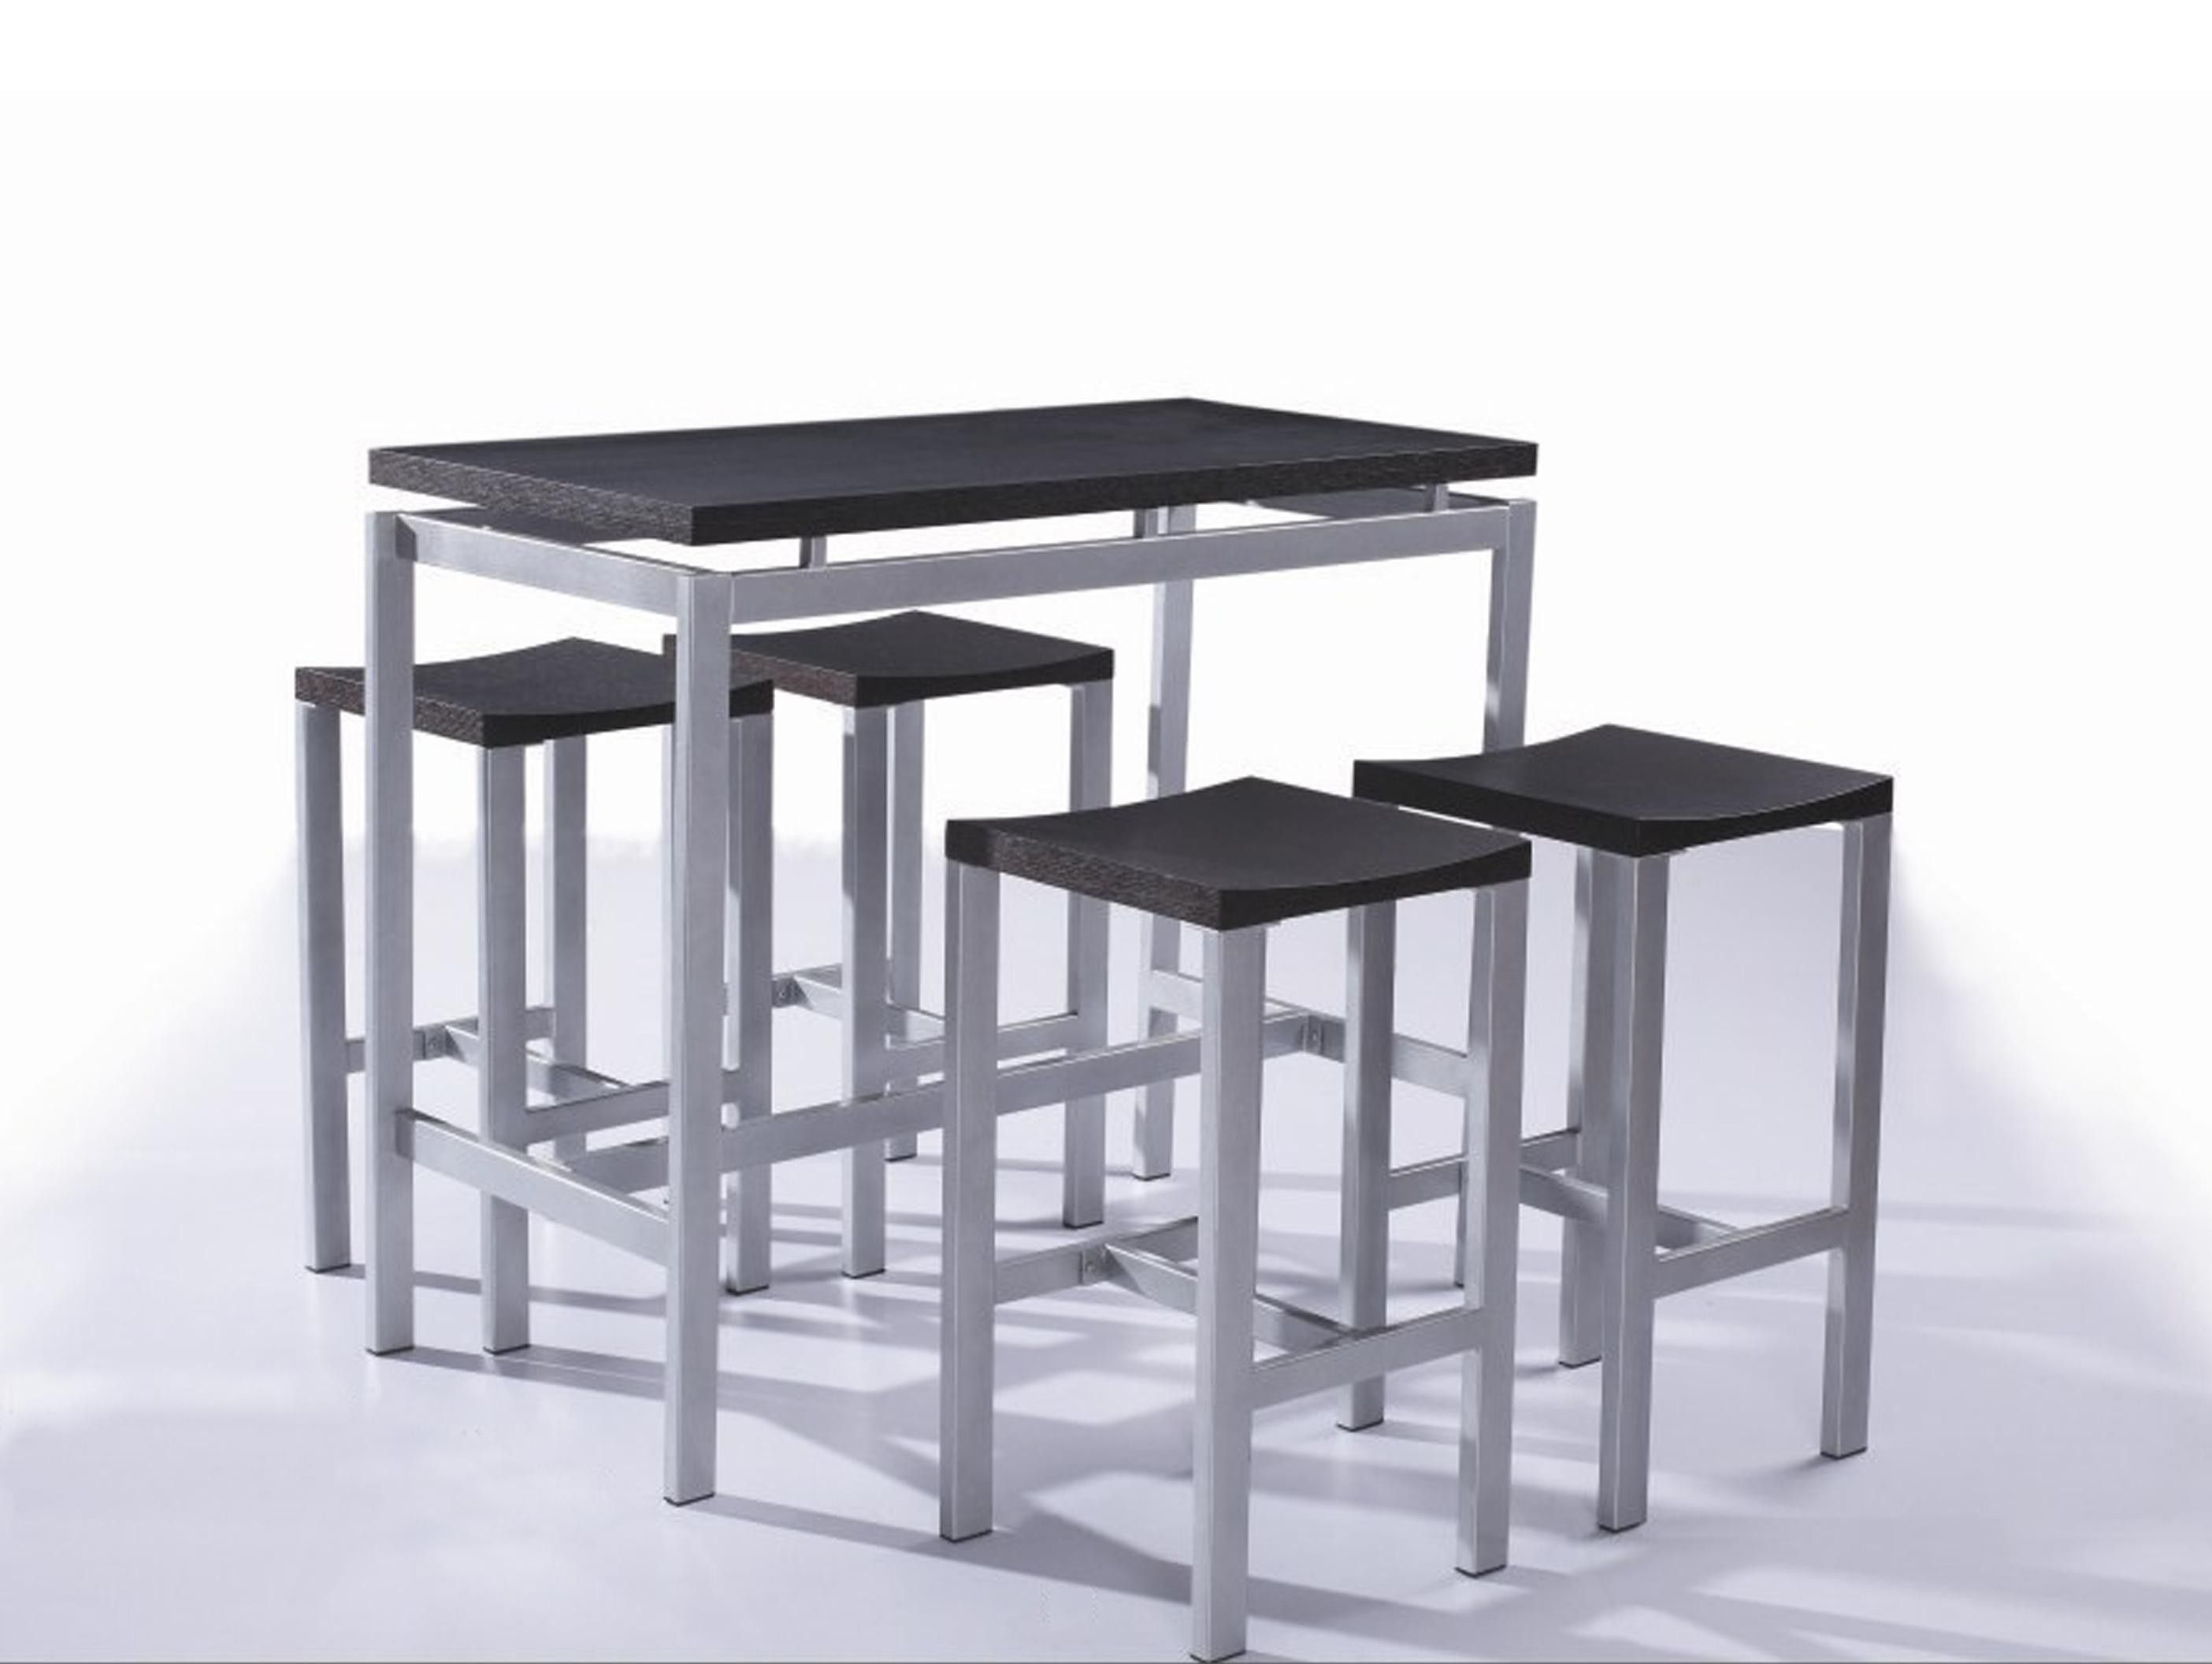 Meilleur De De Table Pliable Conforama